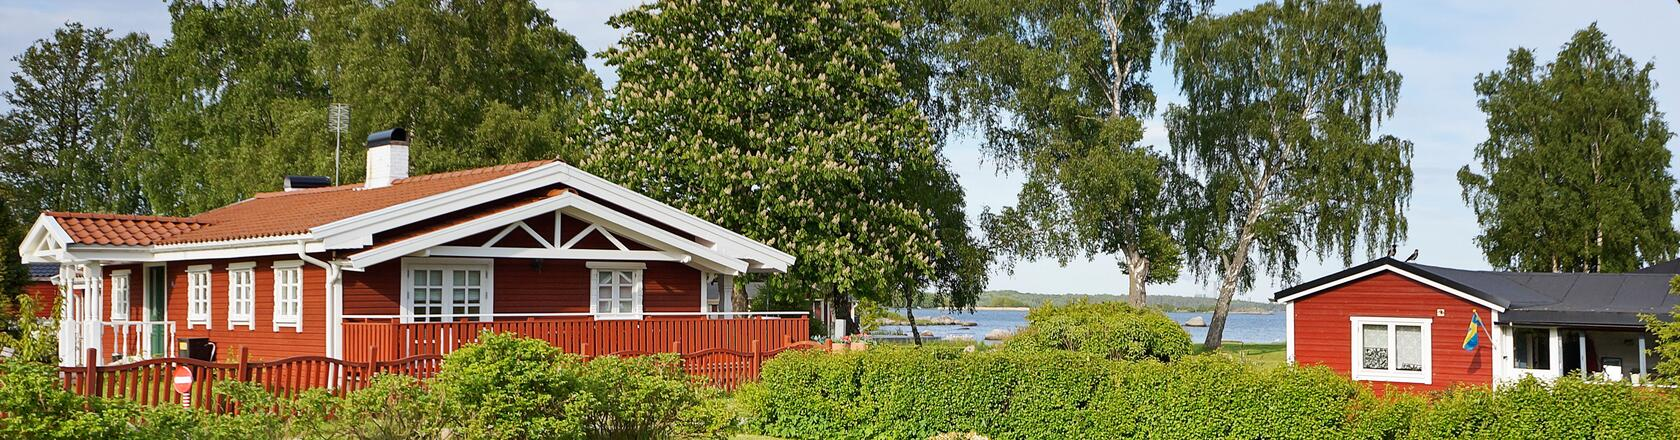 Sandviken in Sweden - Rent a holiday home  with DanCenter